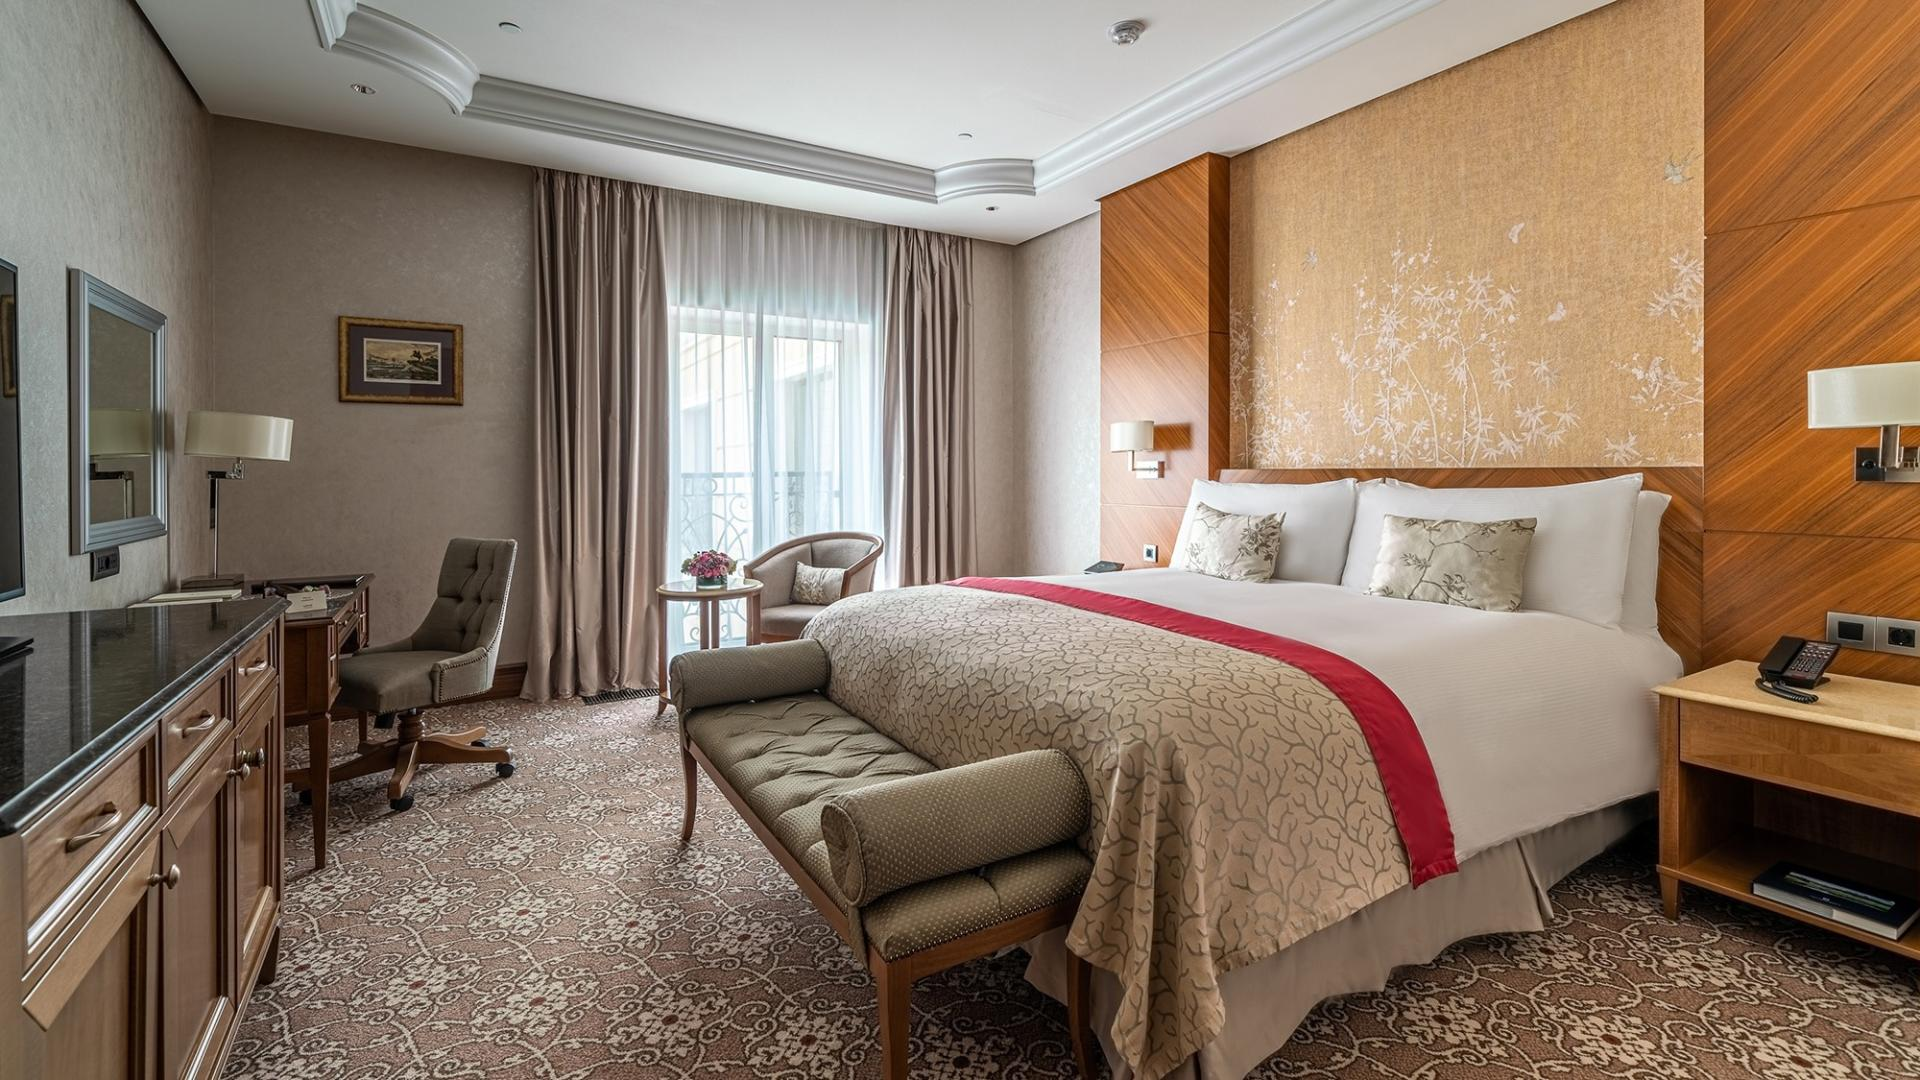 Lotte Hotel St. Petersburg - Rooms - Standard - Superior Room